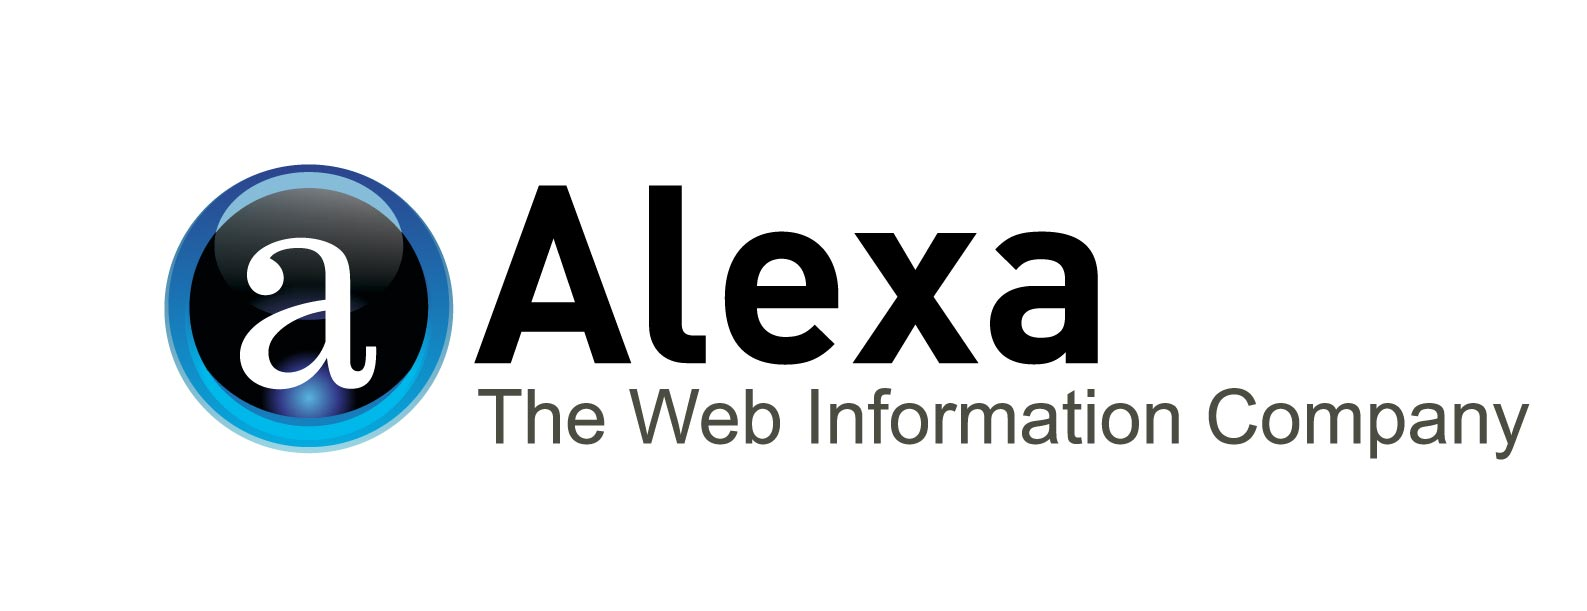 How To Claim/Verify Your Blog/Site On Alexa